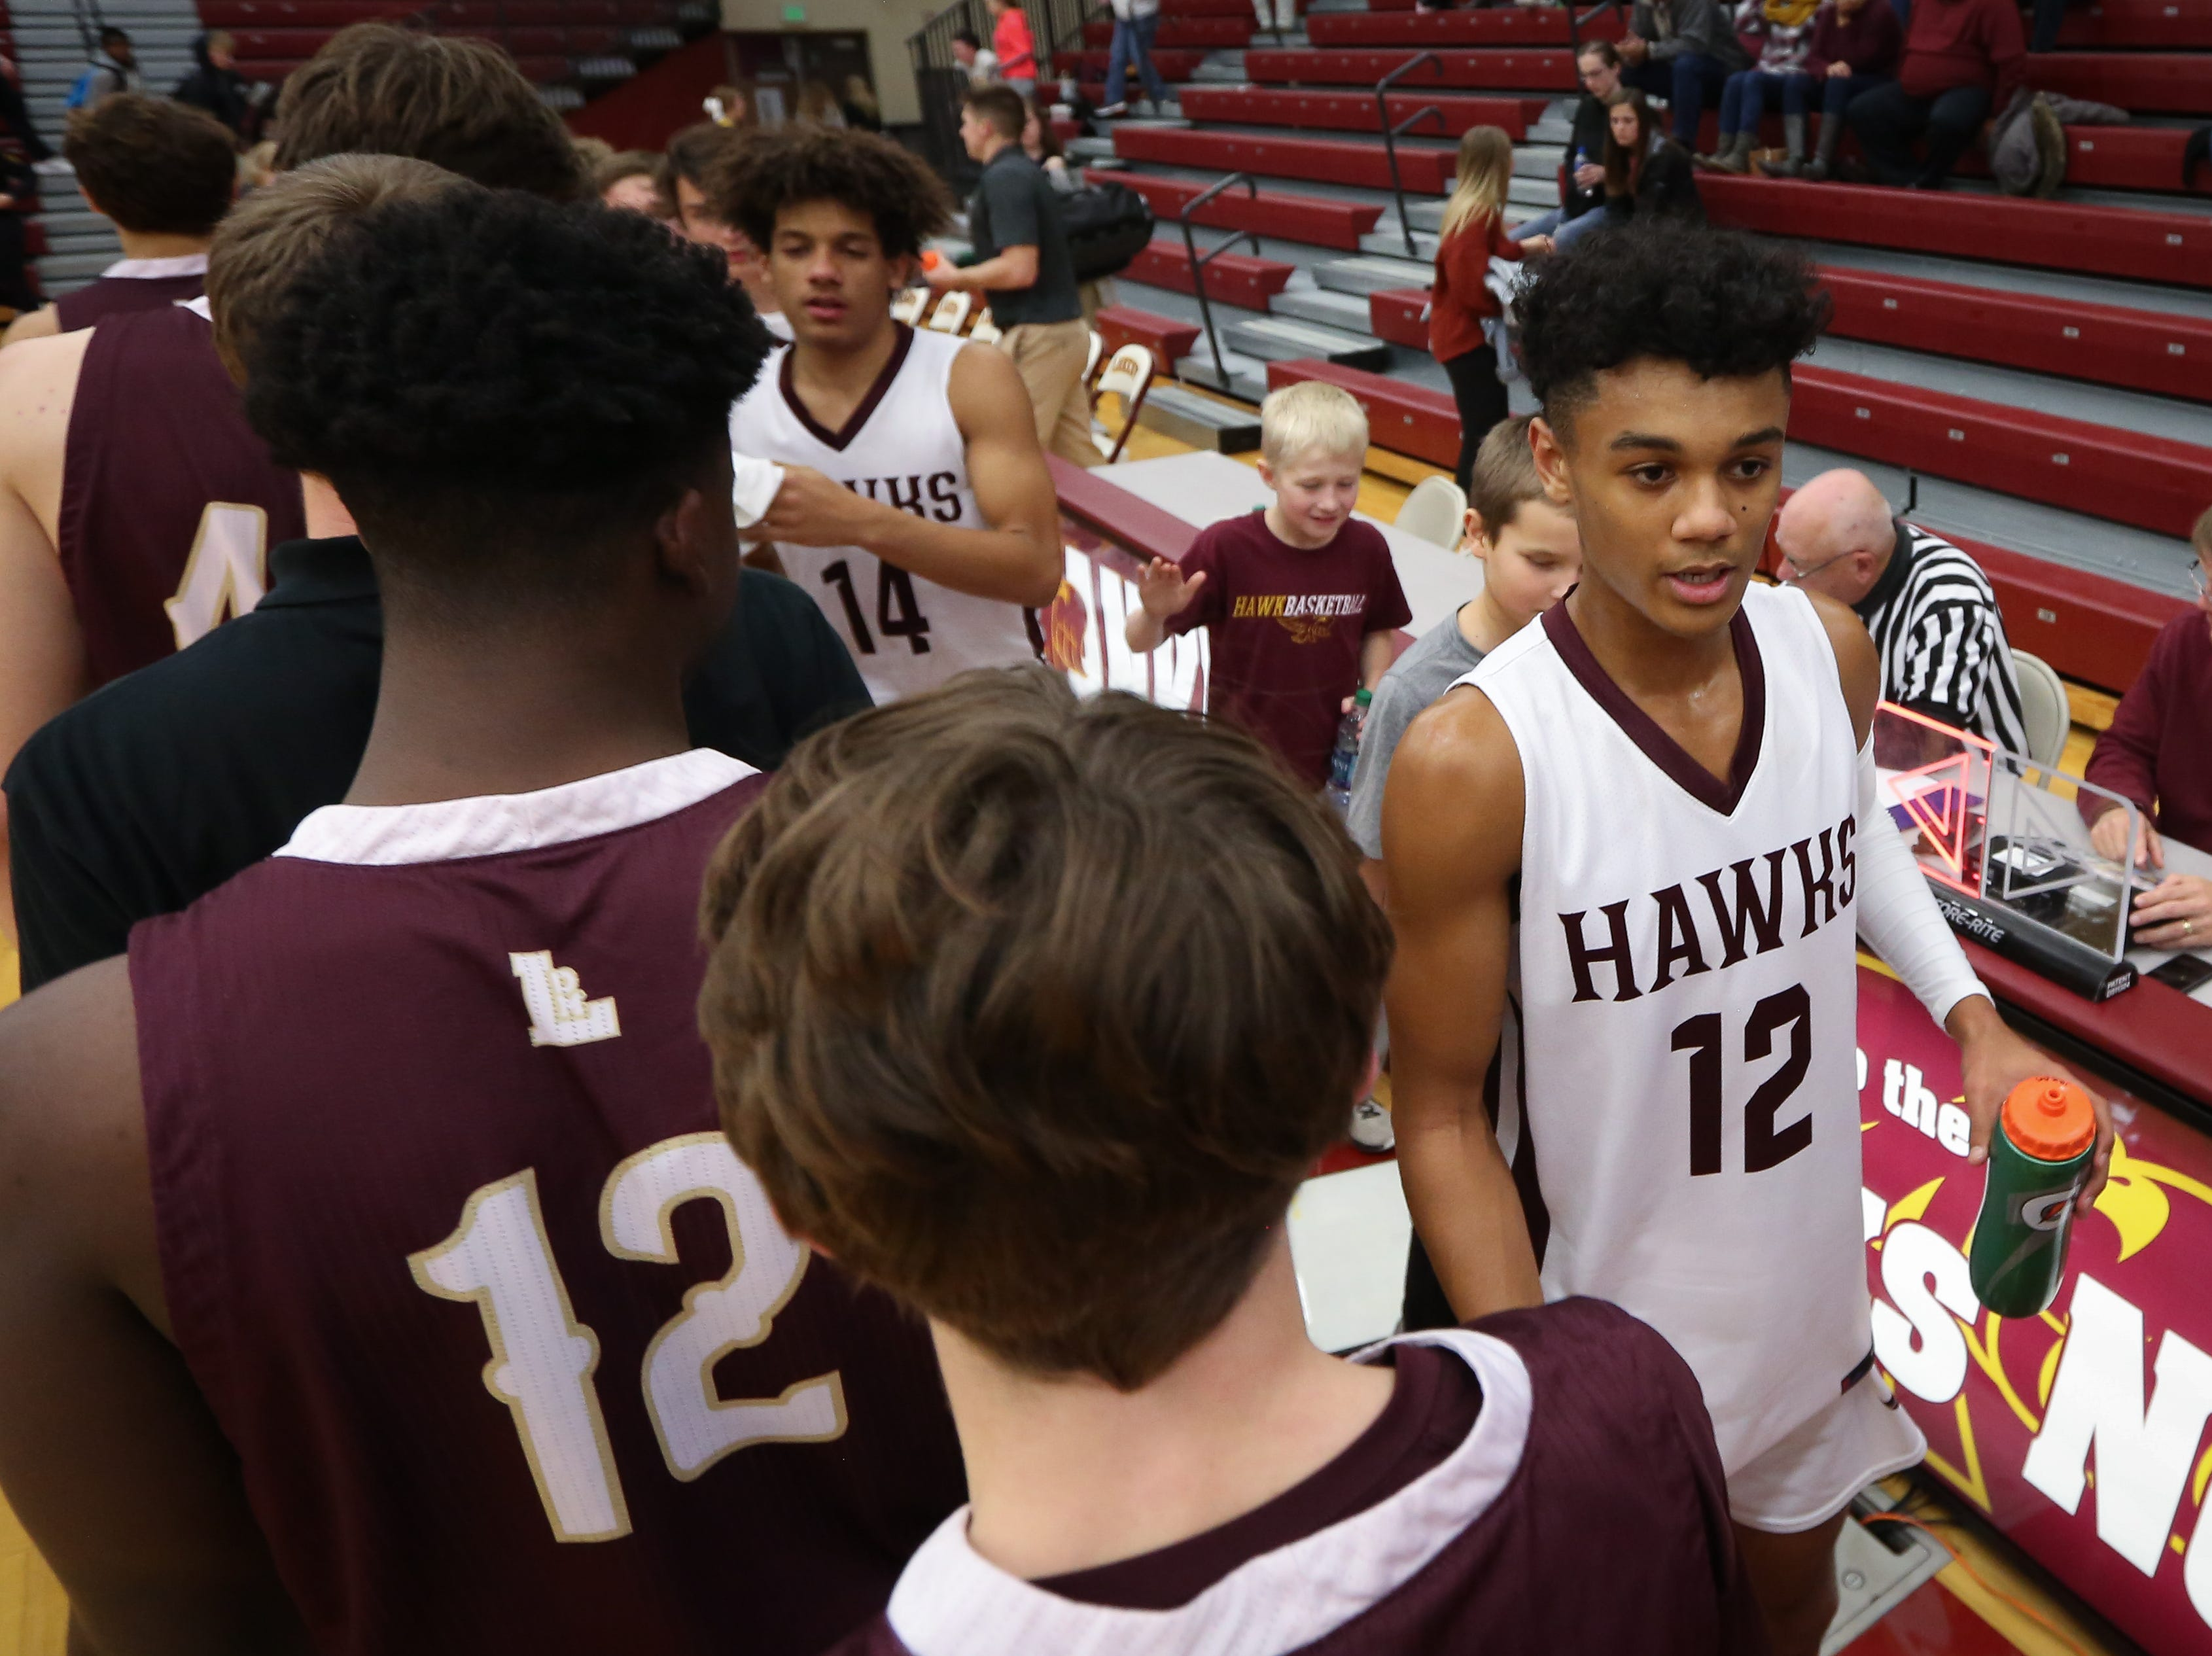 Lincoln junior Jaxon Smith shakes hands with members of the Ankeny Hawks after the Lincoln Railsplitters won, 55-44, in a boys high school basketball game between the Lincoln Railsplitters and the Ankeny Hawks at Ankeny High School on Dec. 4, 2018 in Ankeny, Iowa.